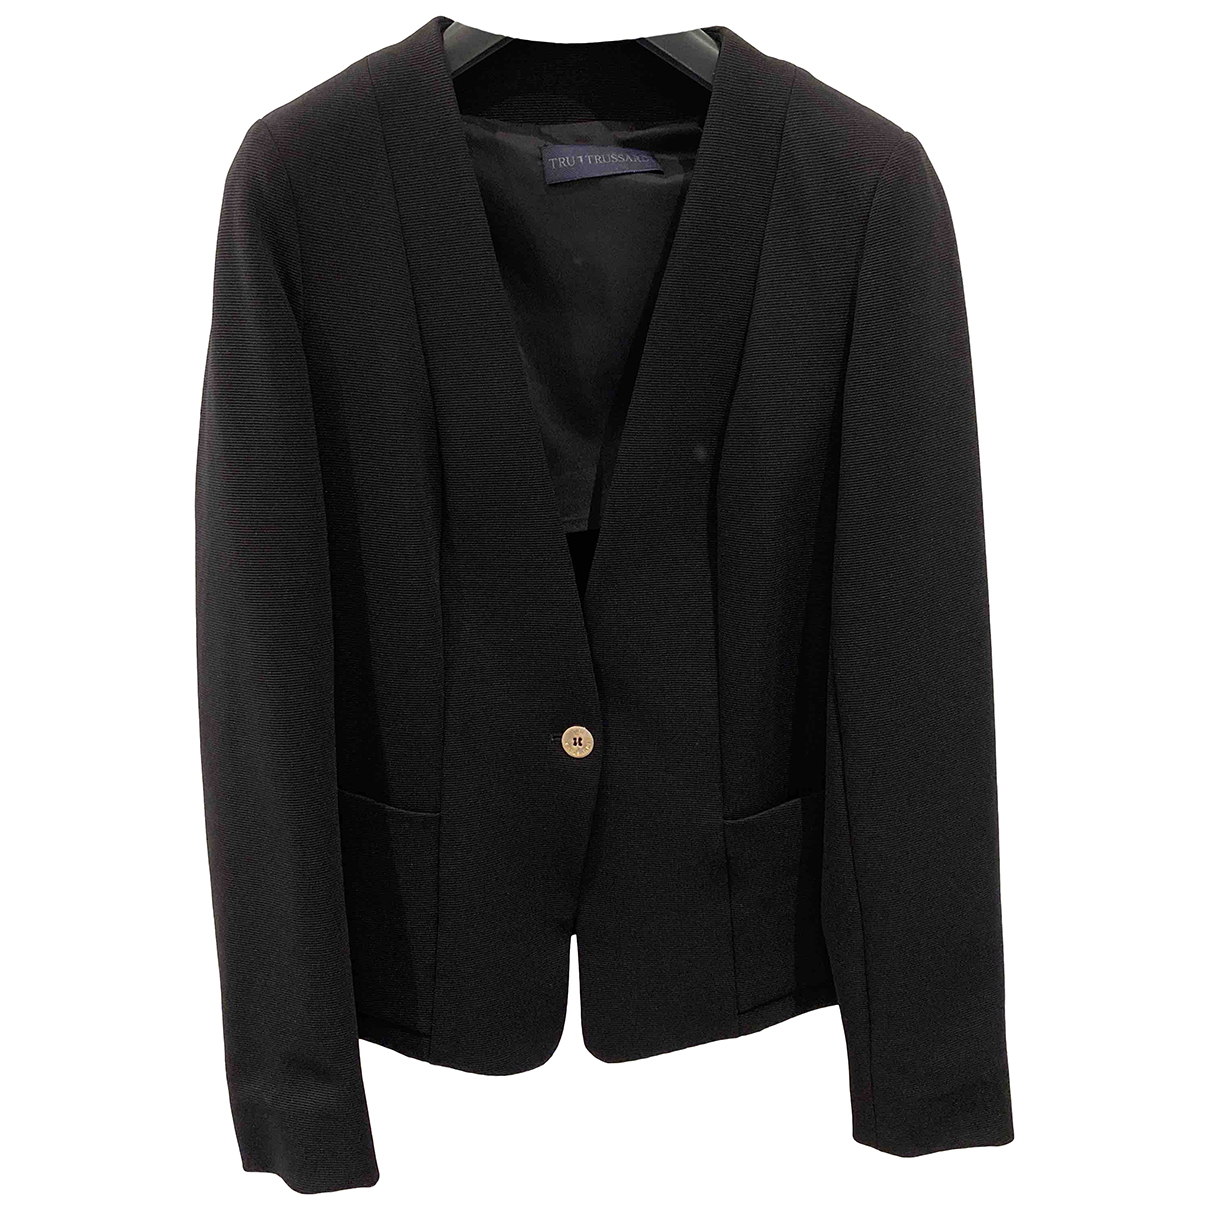 Trussardi N Black jacket for Women 36 FR